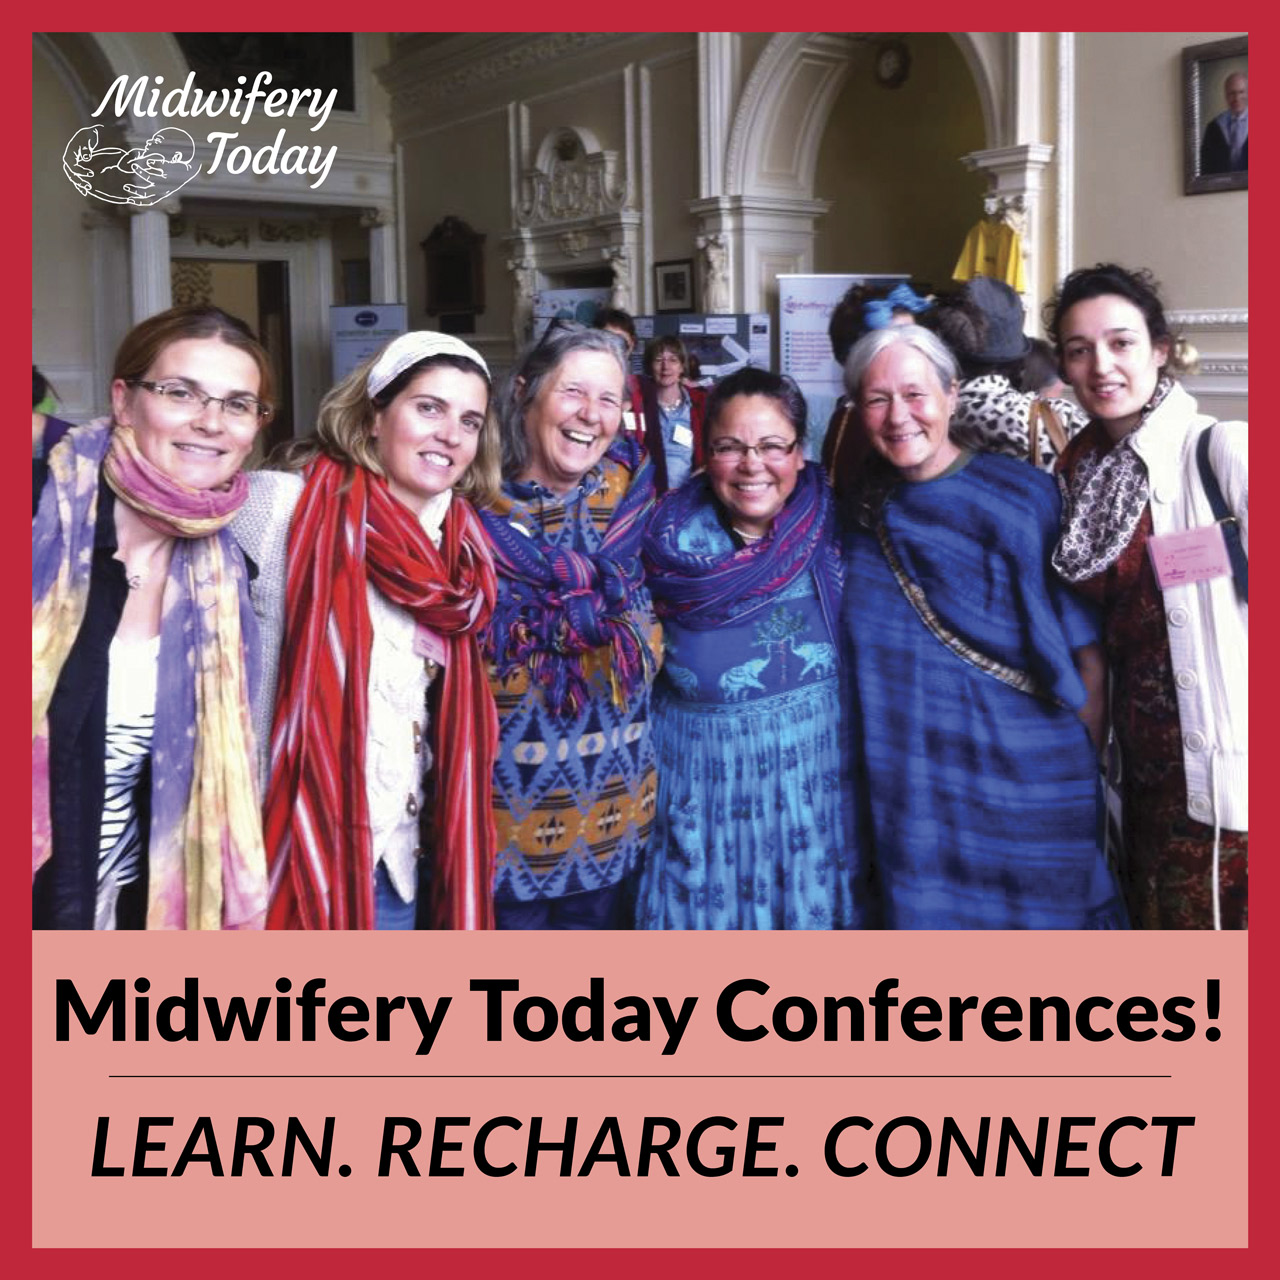 Come to a Midwifery Today conference